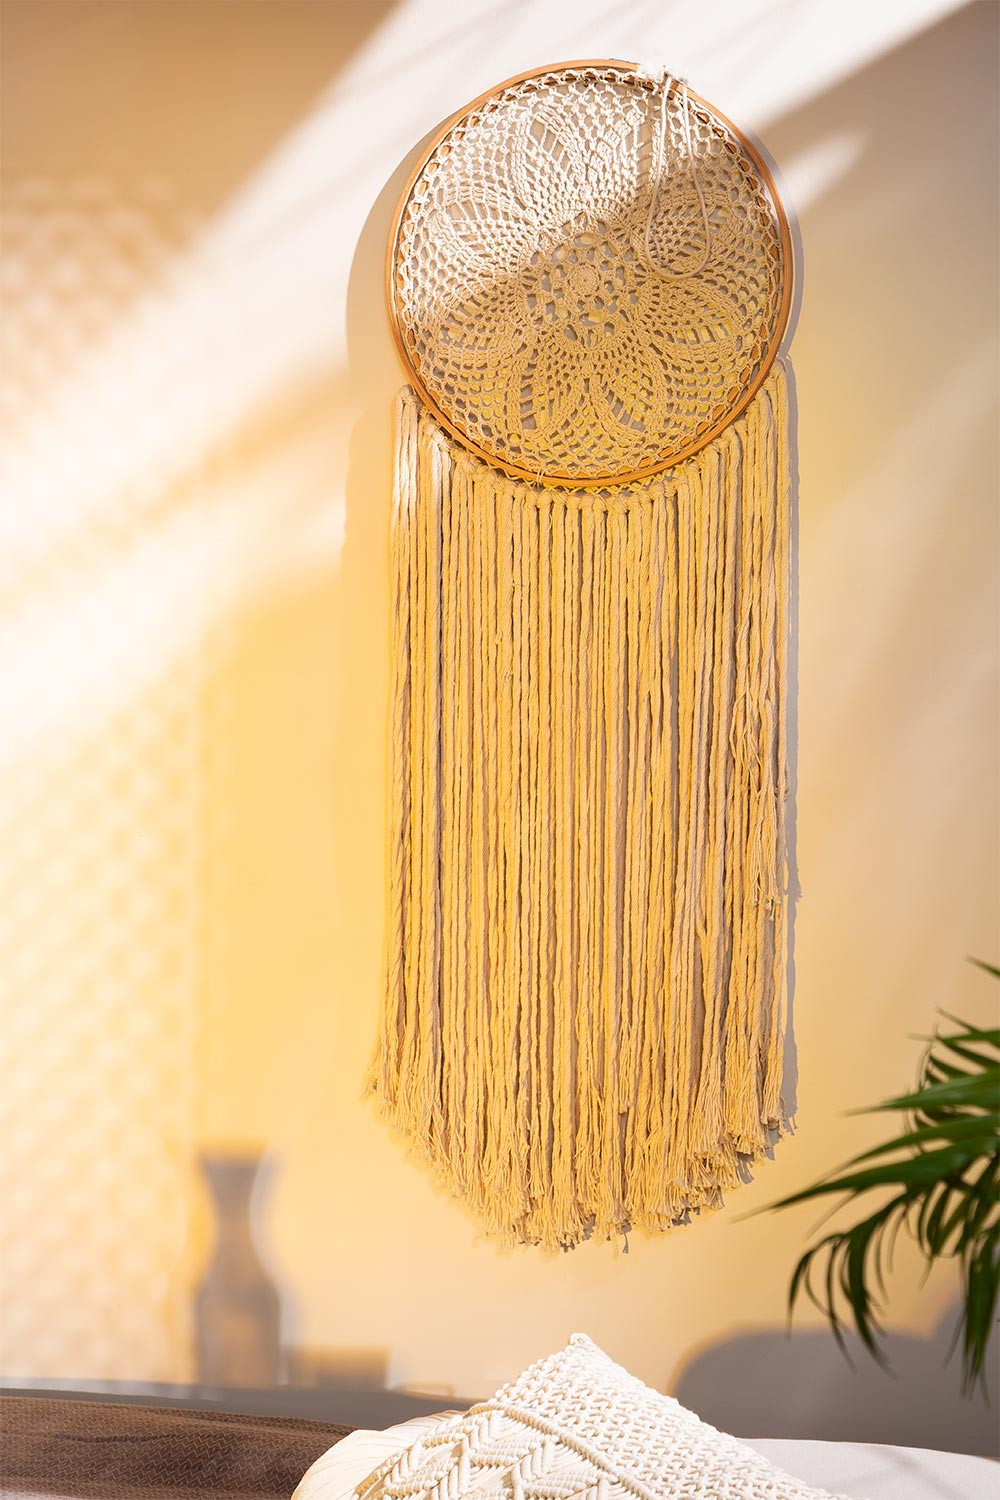 Nait Decorative Wall Dreamcatcher, gallery image 1